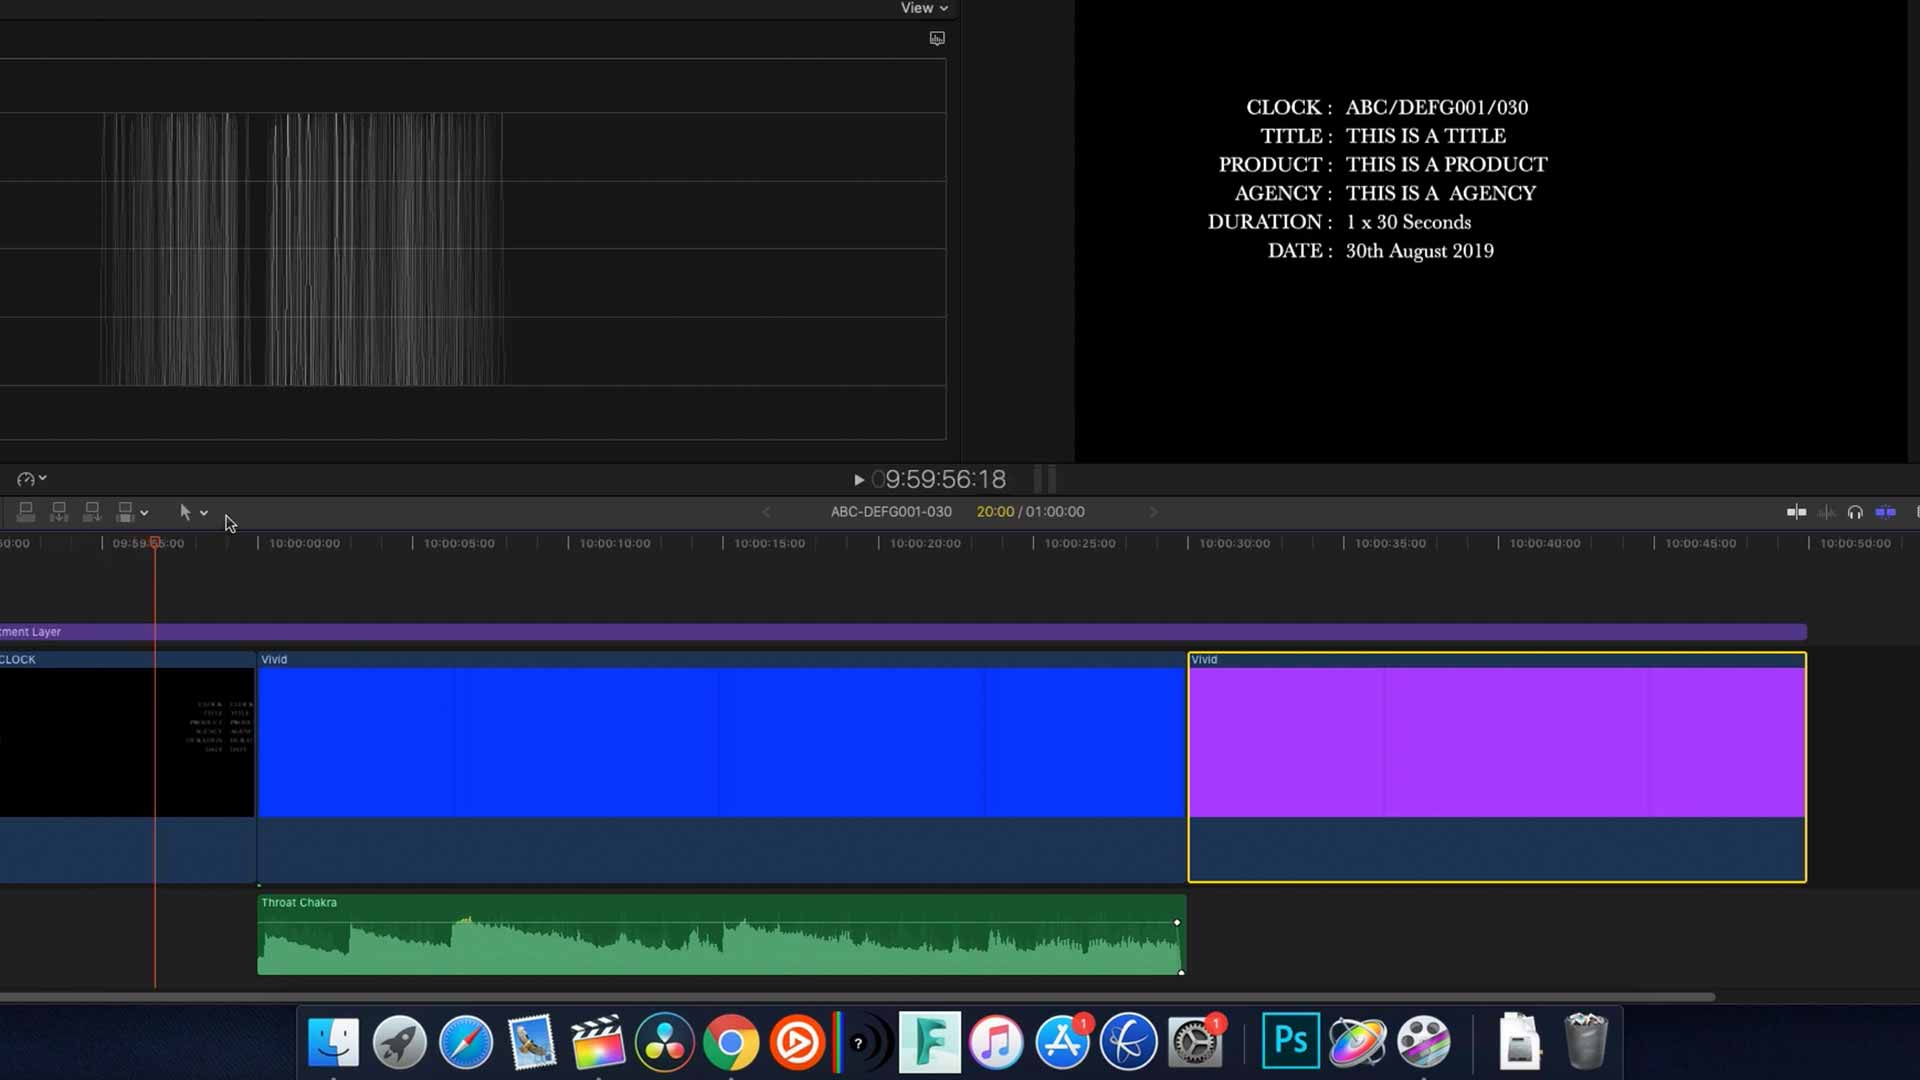 Format a TV Commercial in Final Cut Pro X for Delivery in the UK